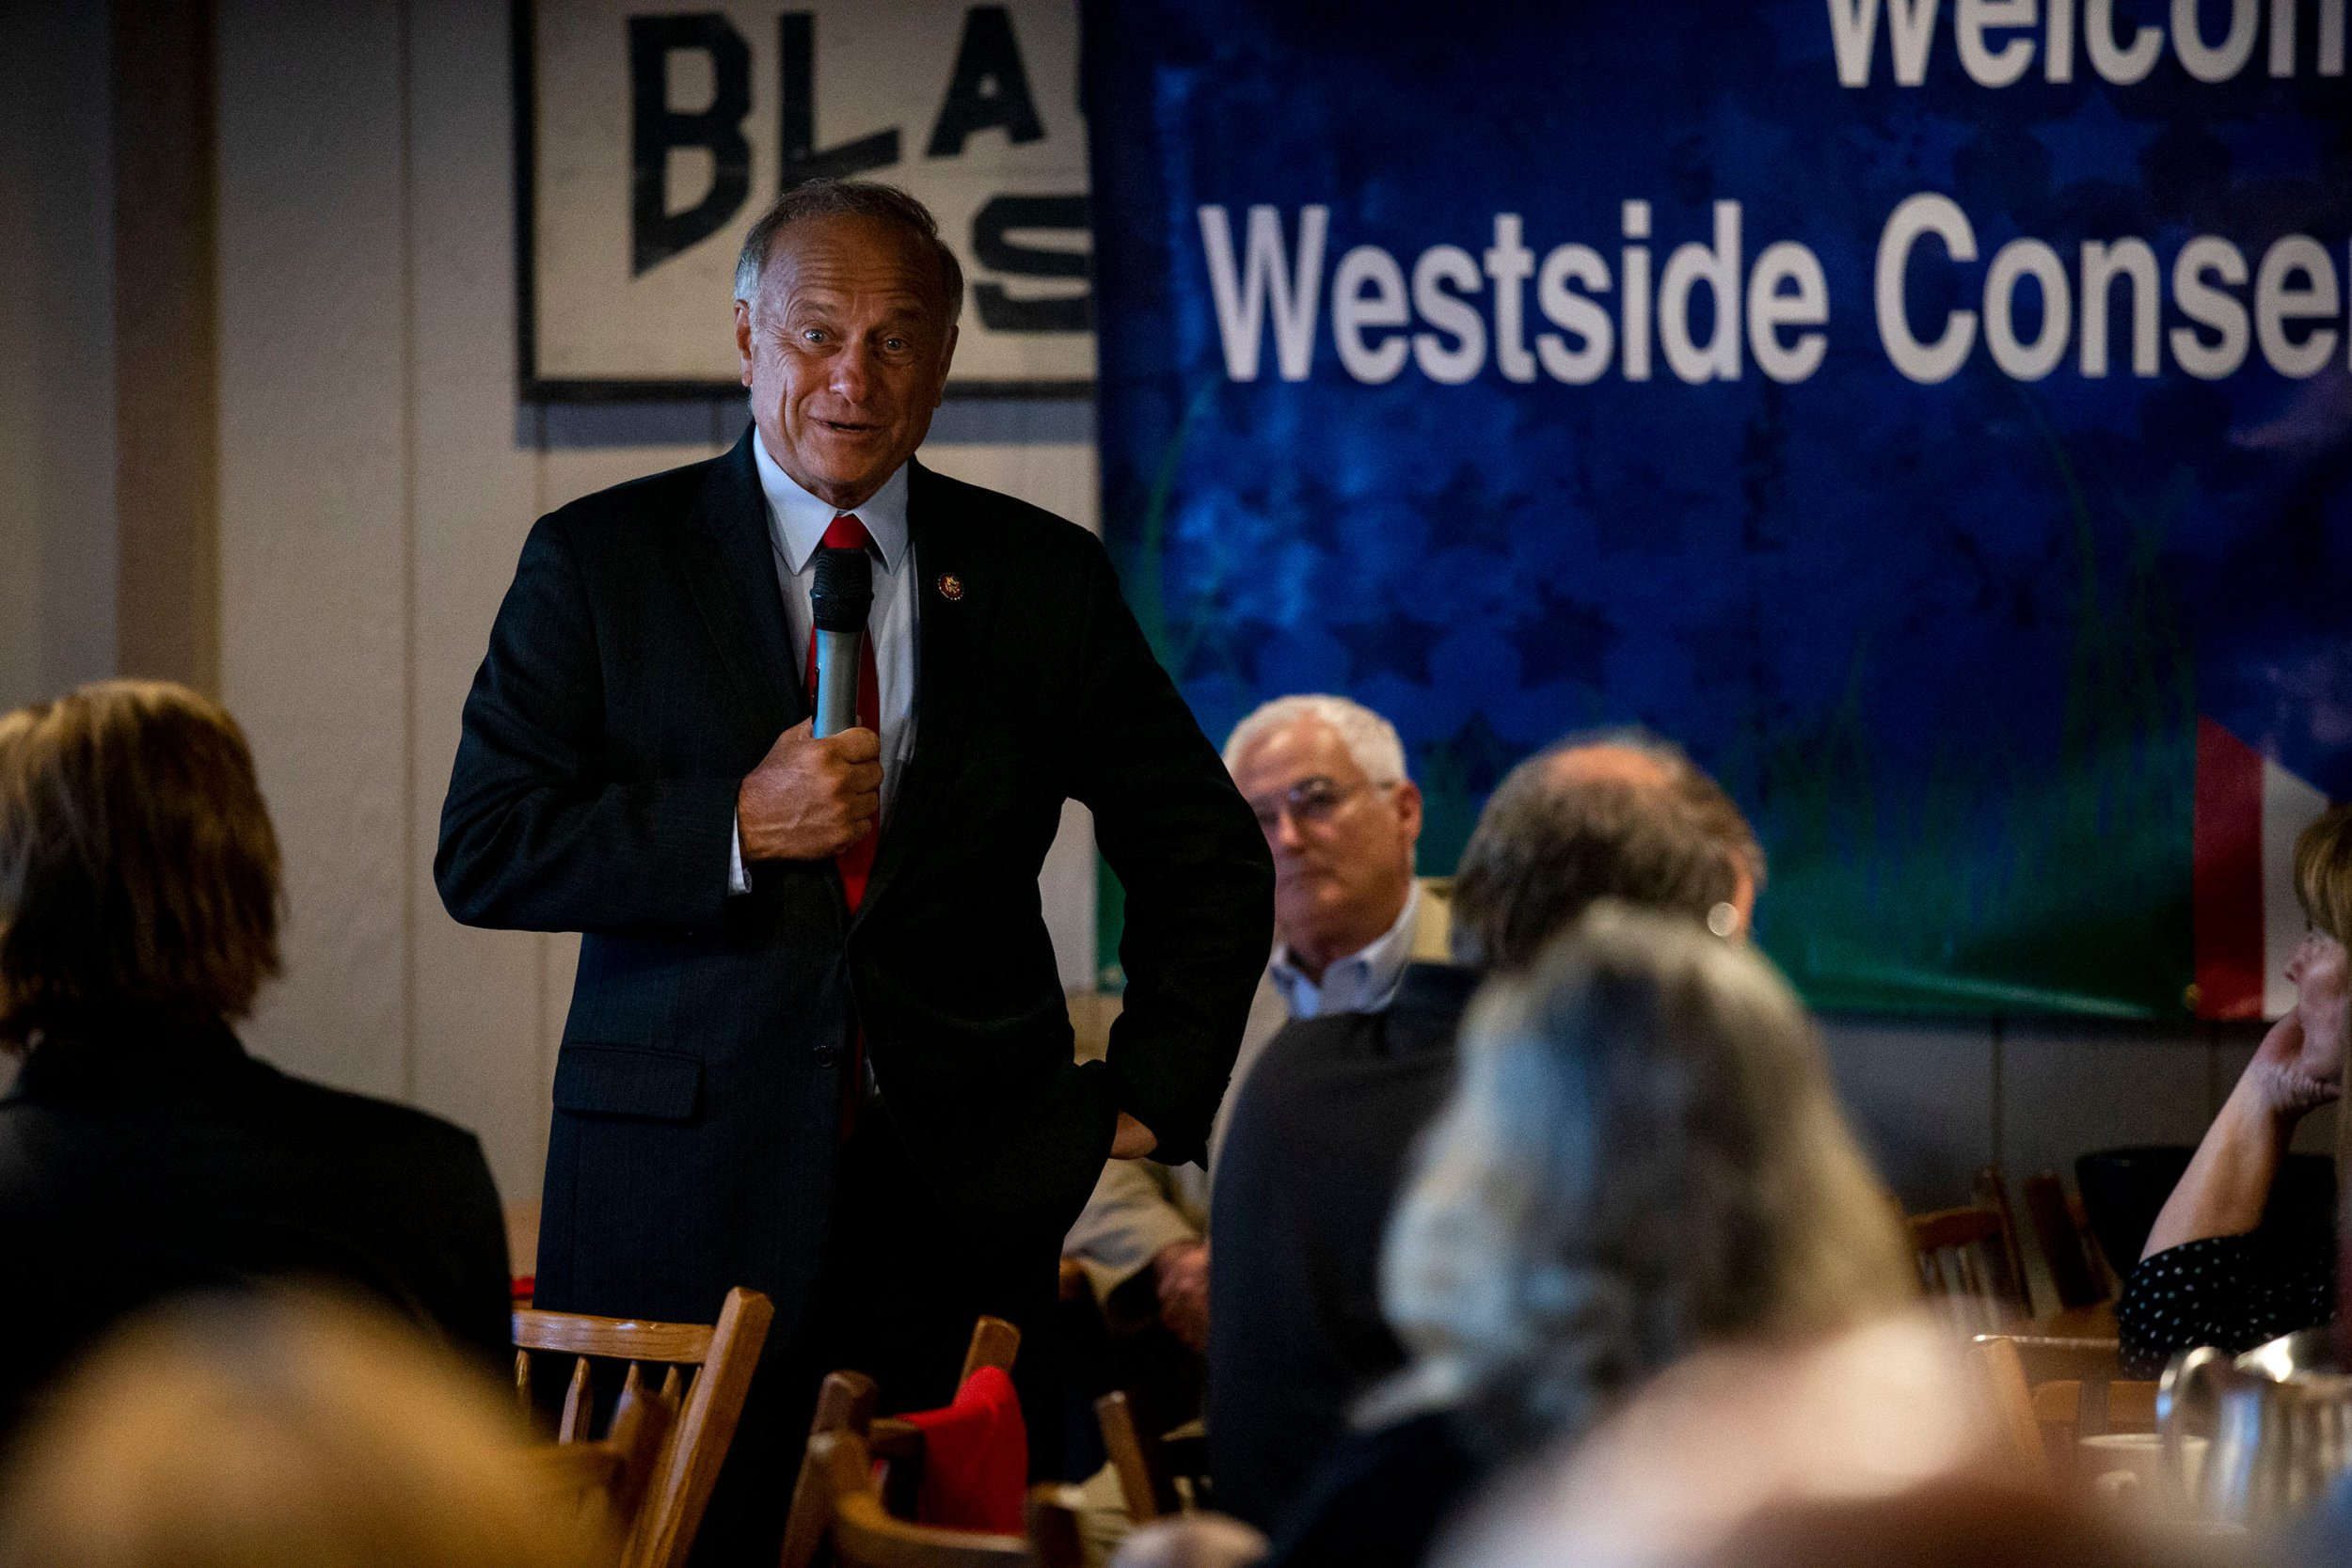 Photo of Steve King addressing a West Side Conservative Club about banning termination in a box of rape or incest